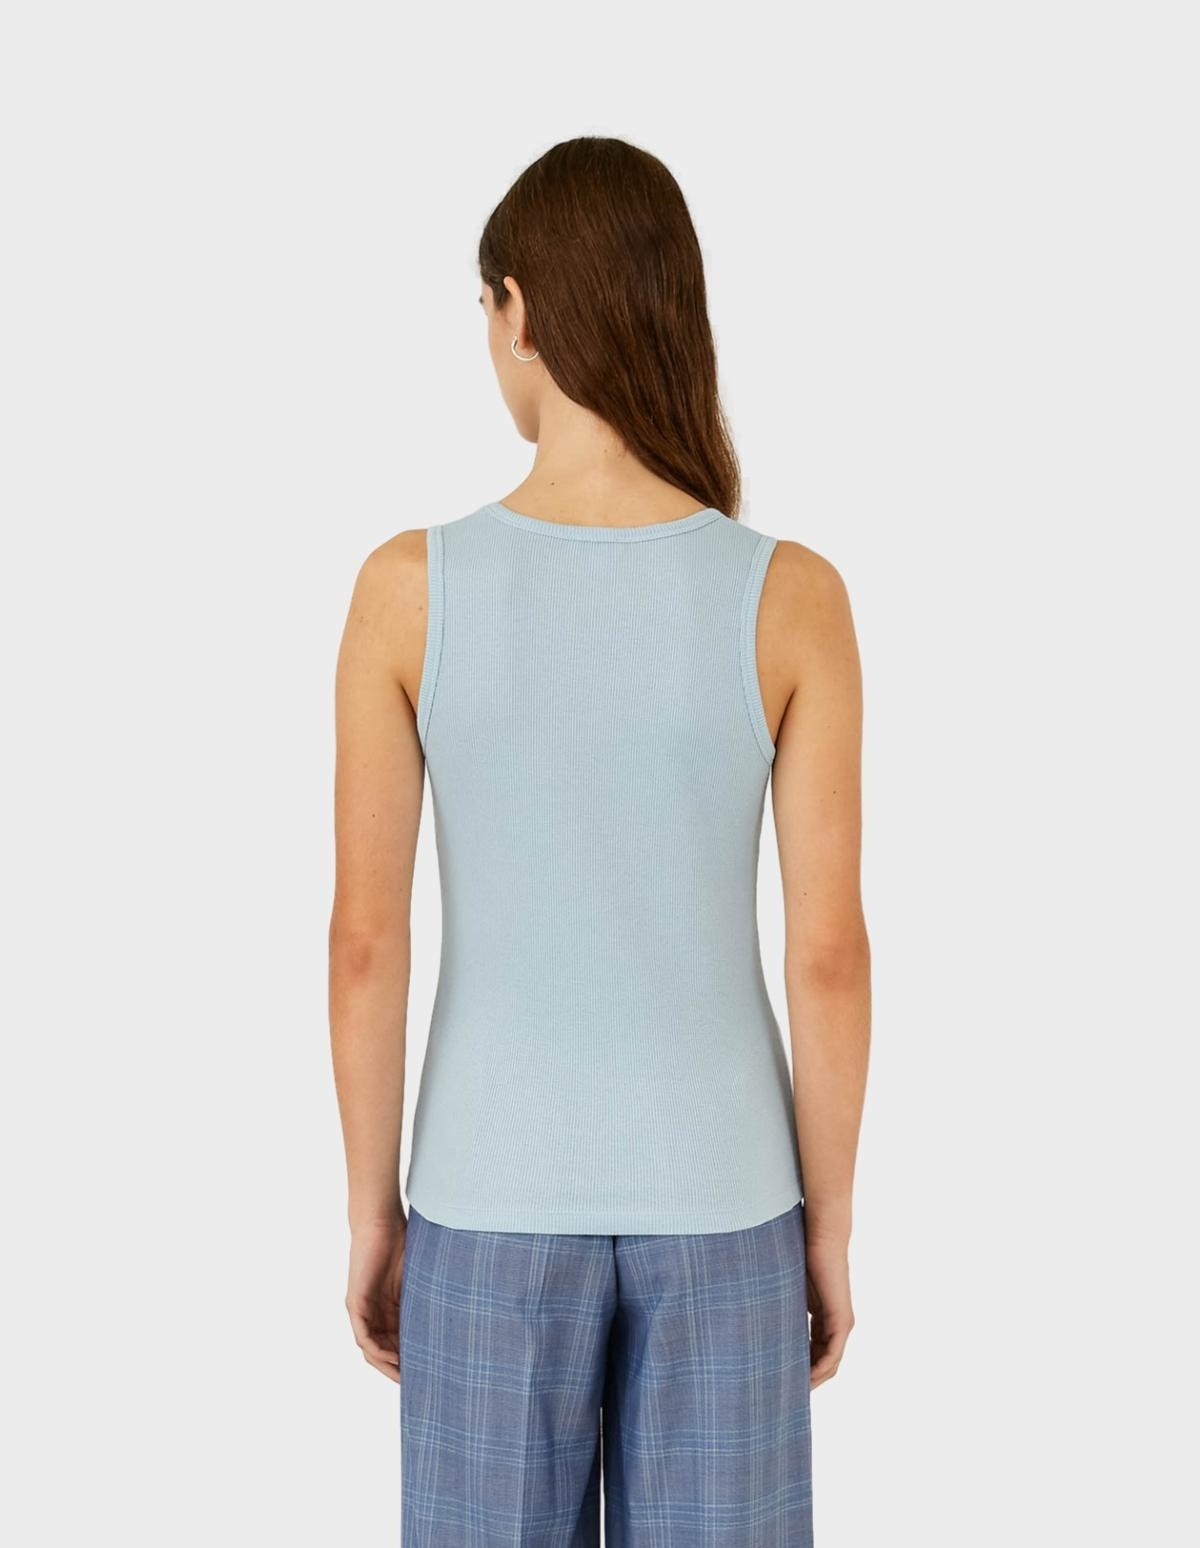 Sunspel Vest in Blue Jeans